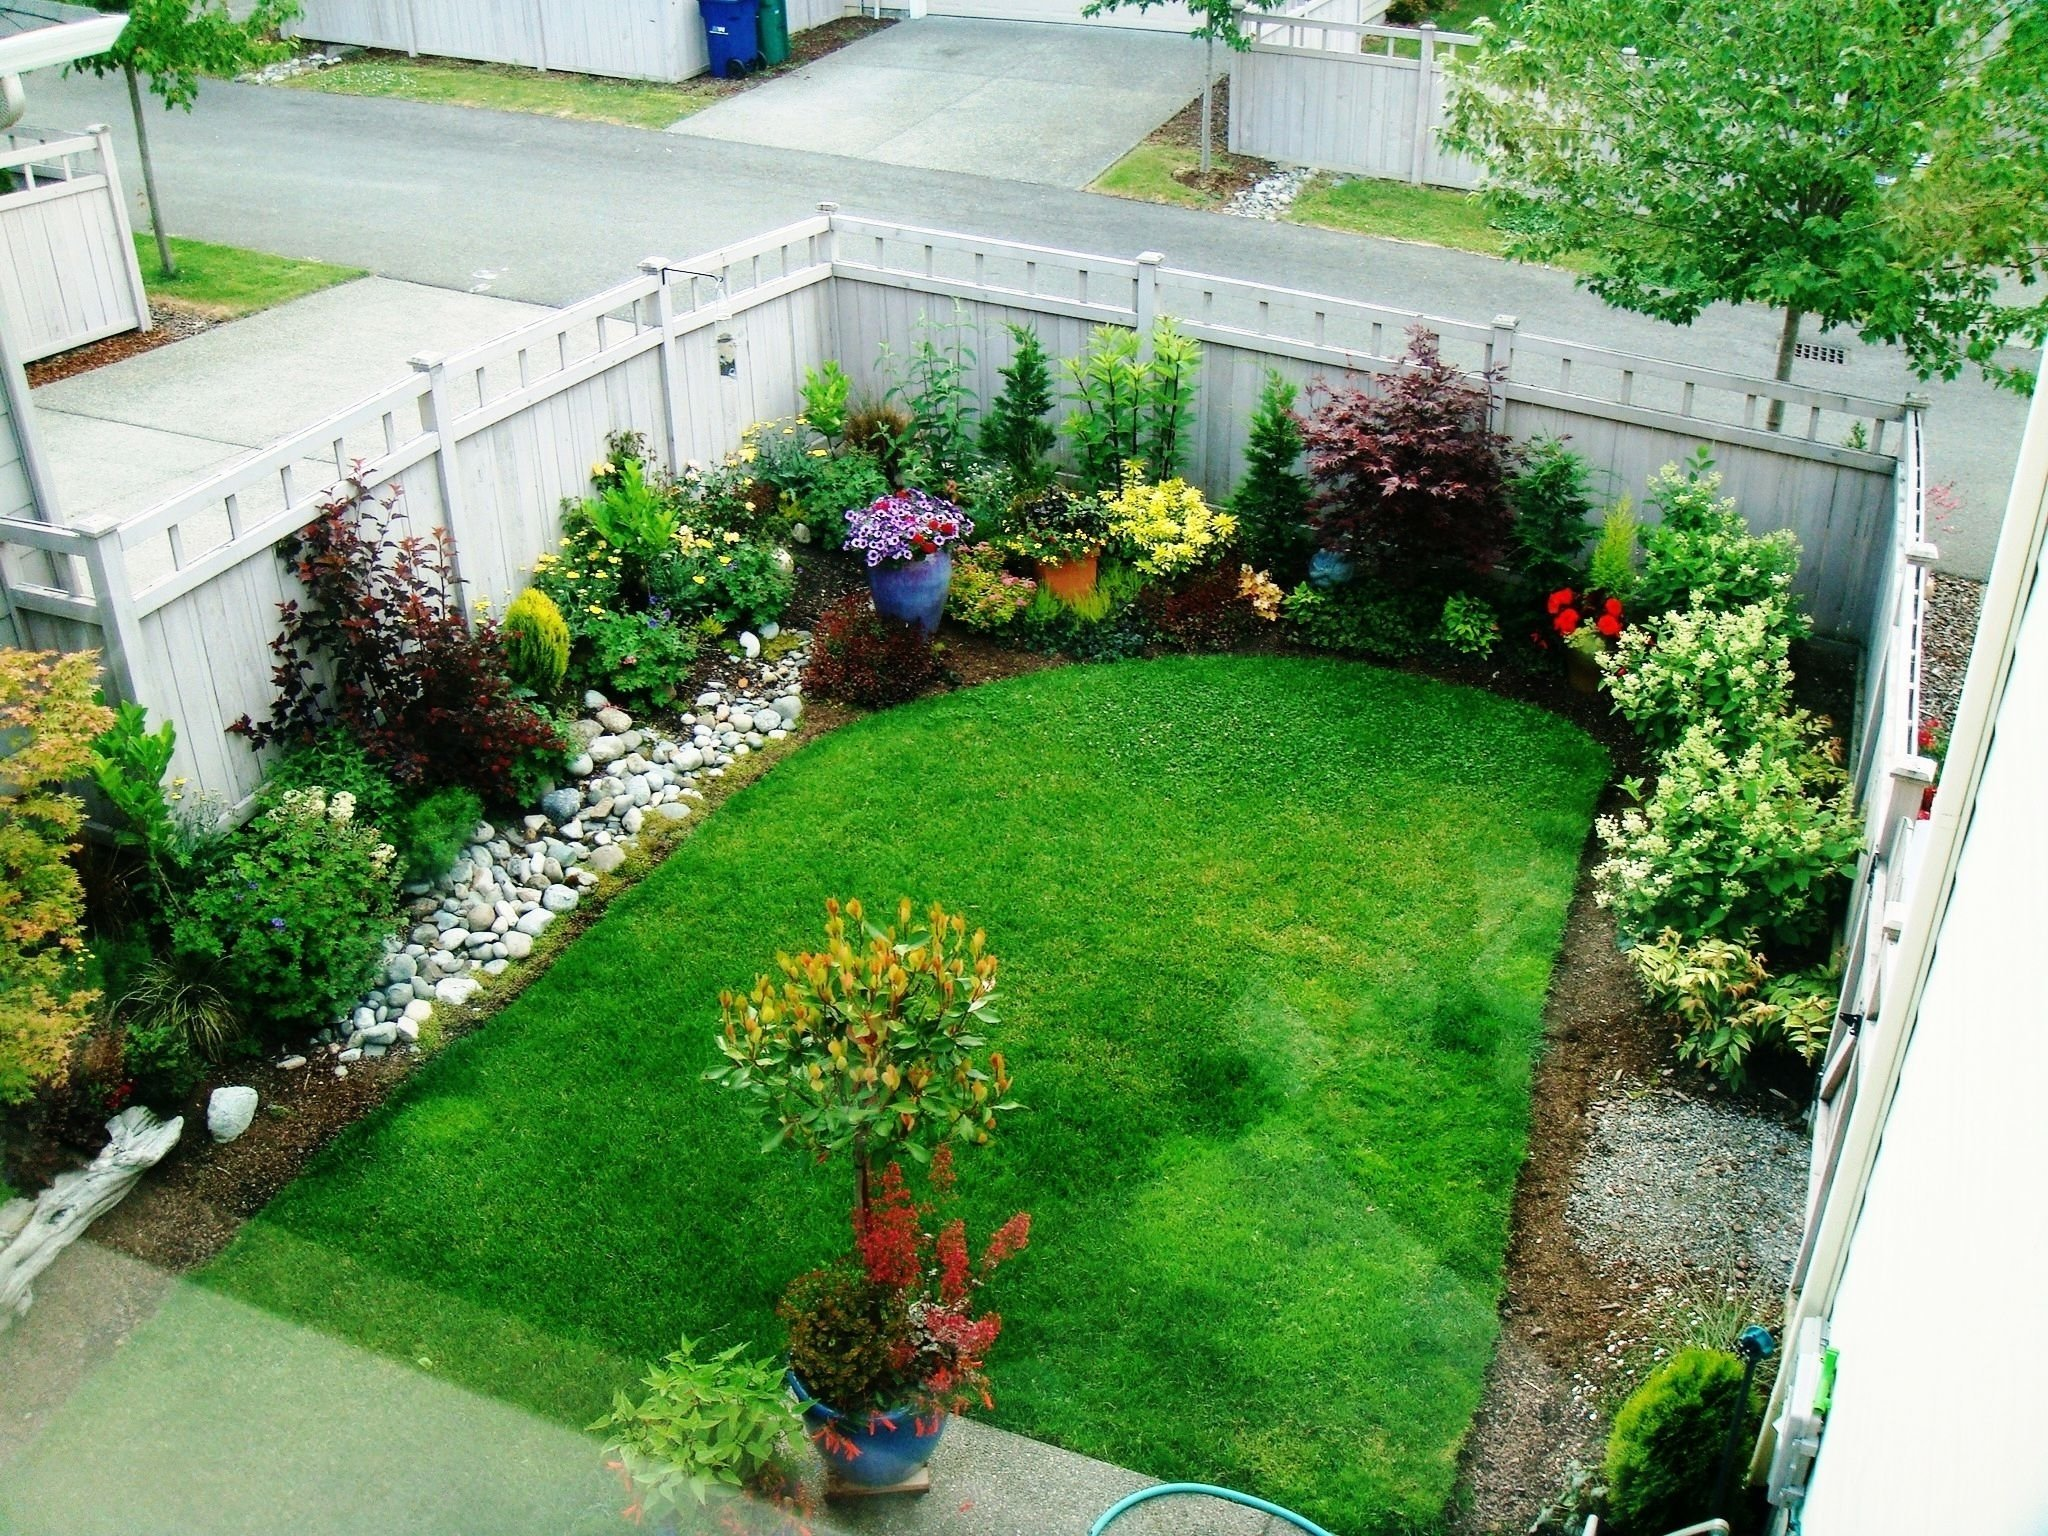 10 Attractive Landscaping Ideas For Small Yards 18 garden design for small backyard page 13 of 18 landscape 5 2020